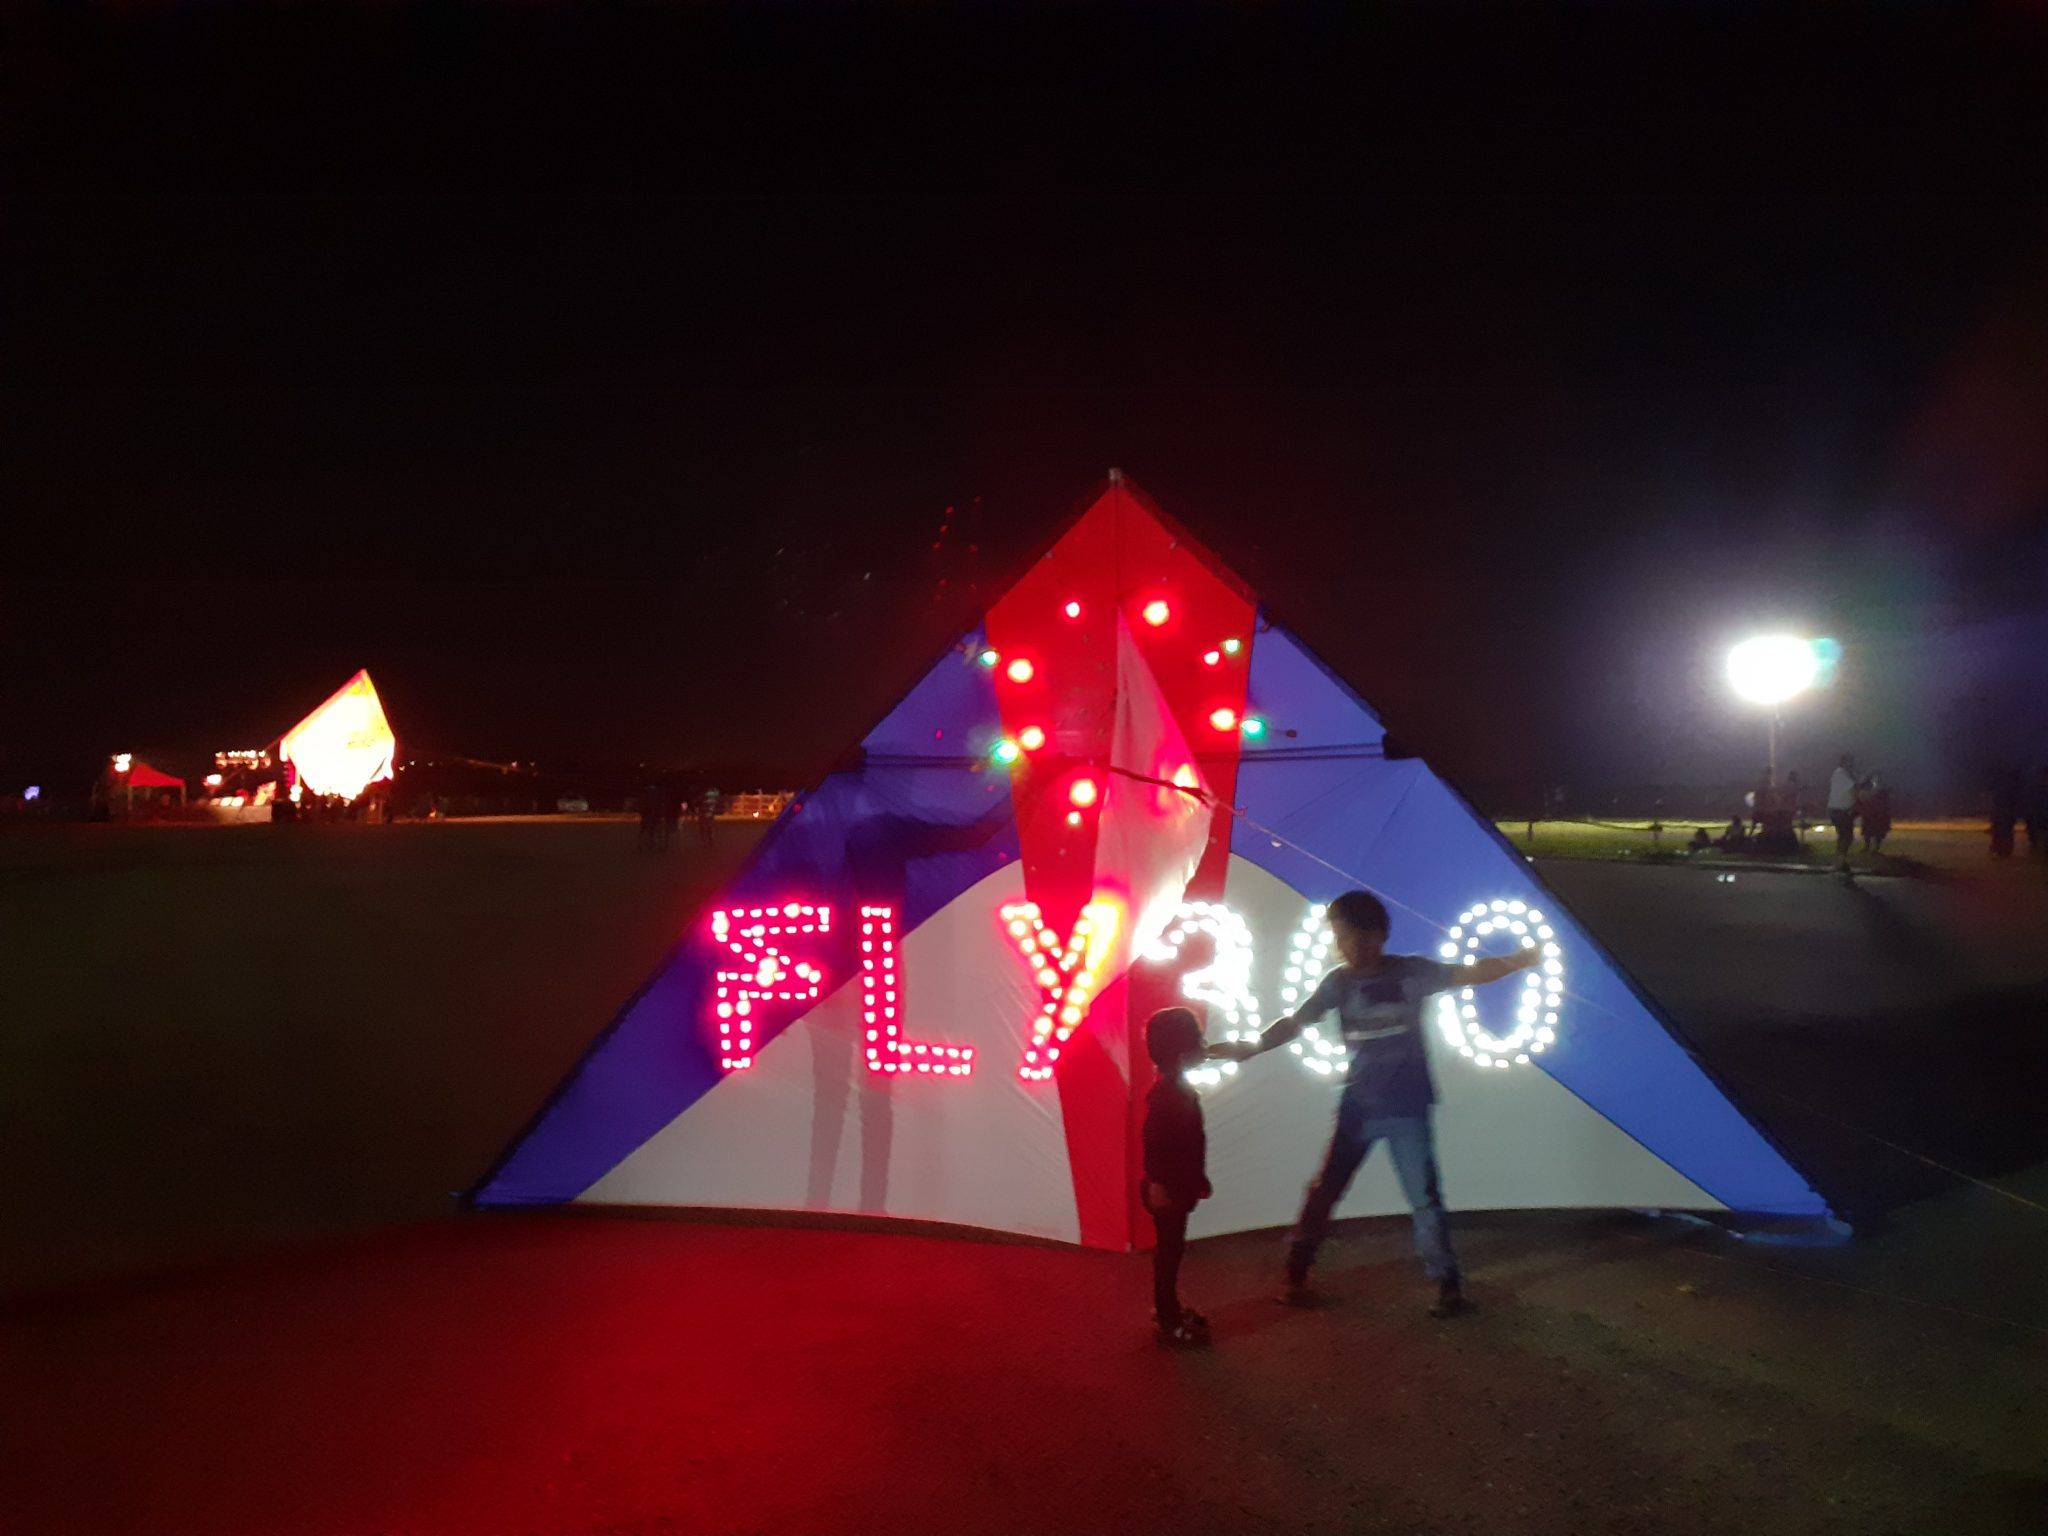 FLY360 custom design led night flying kite